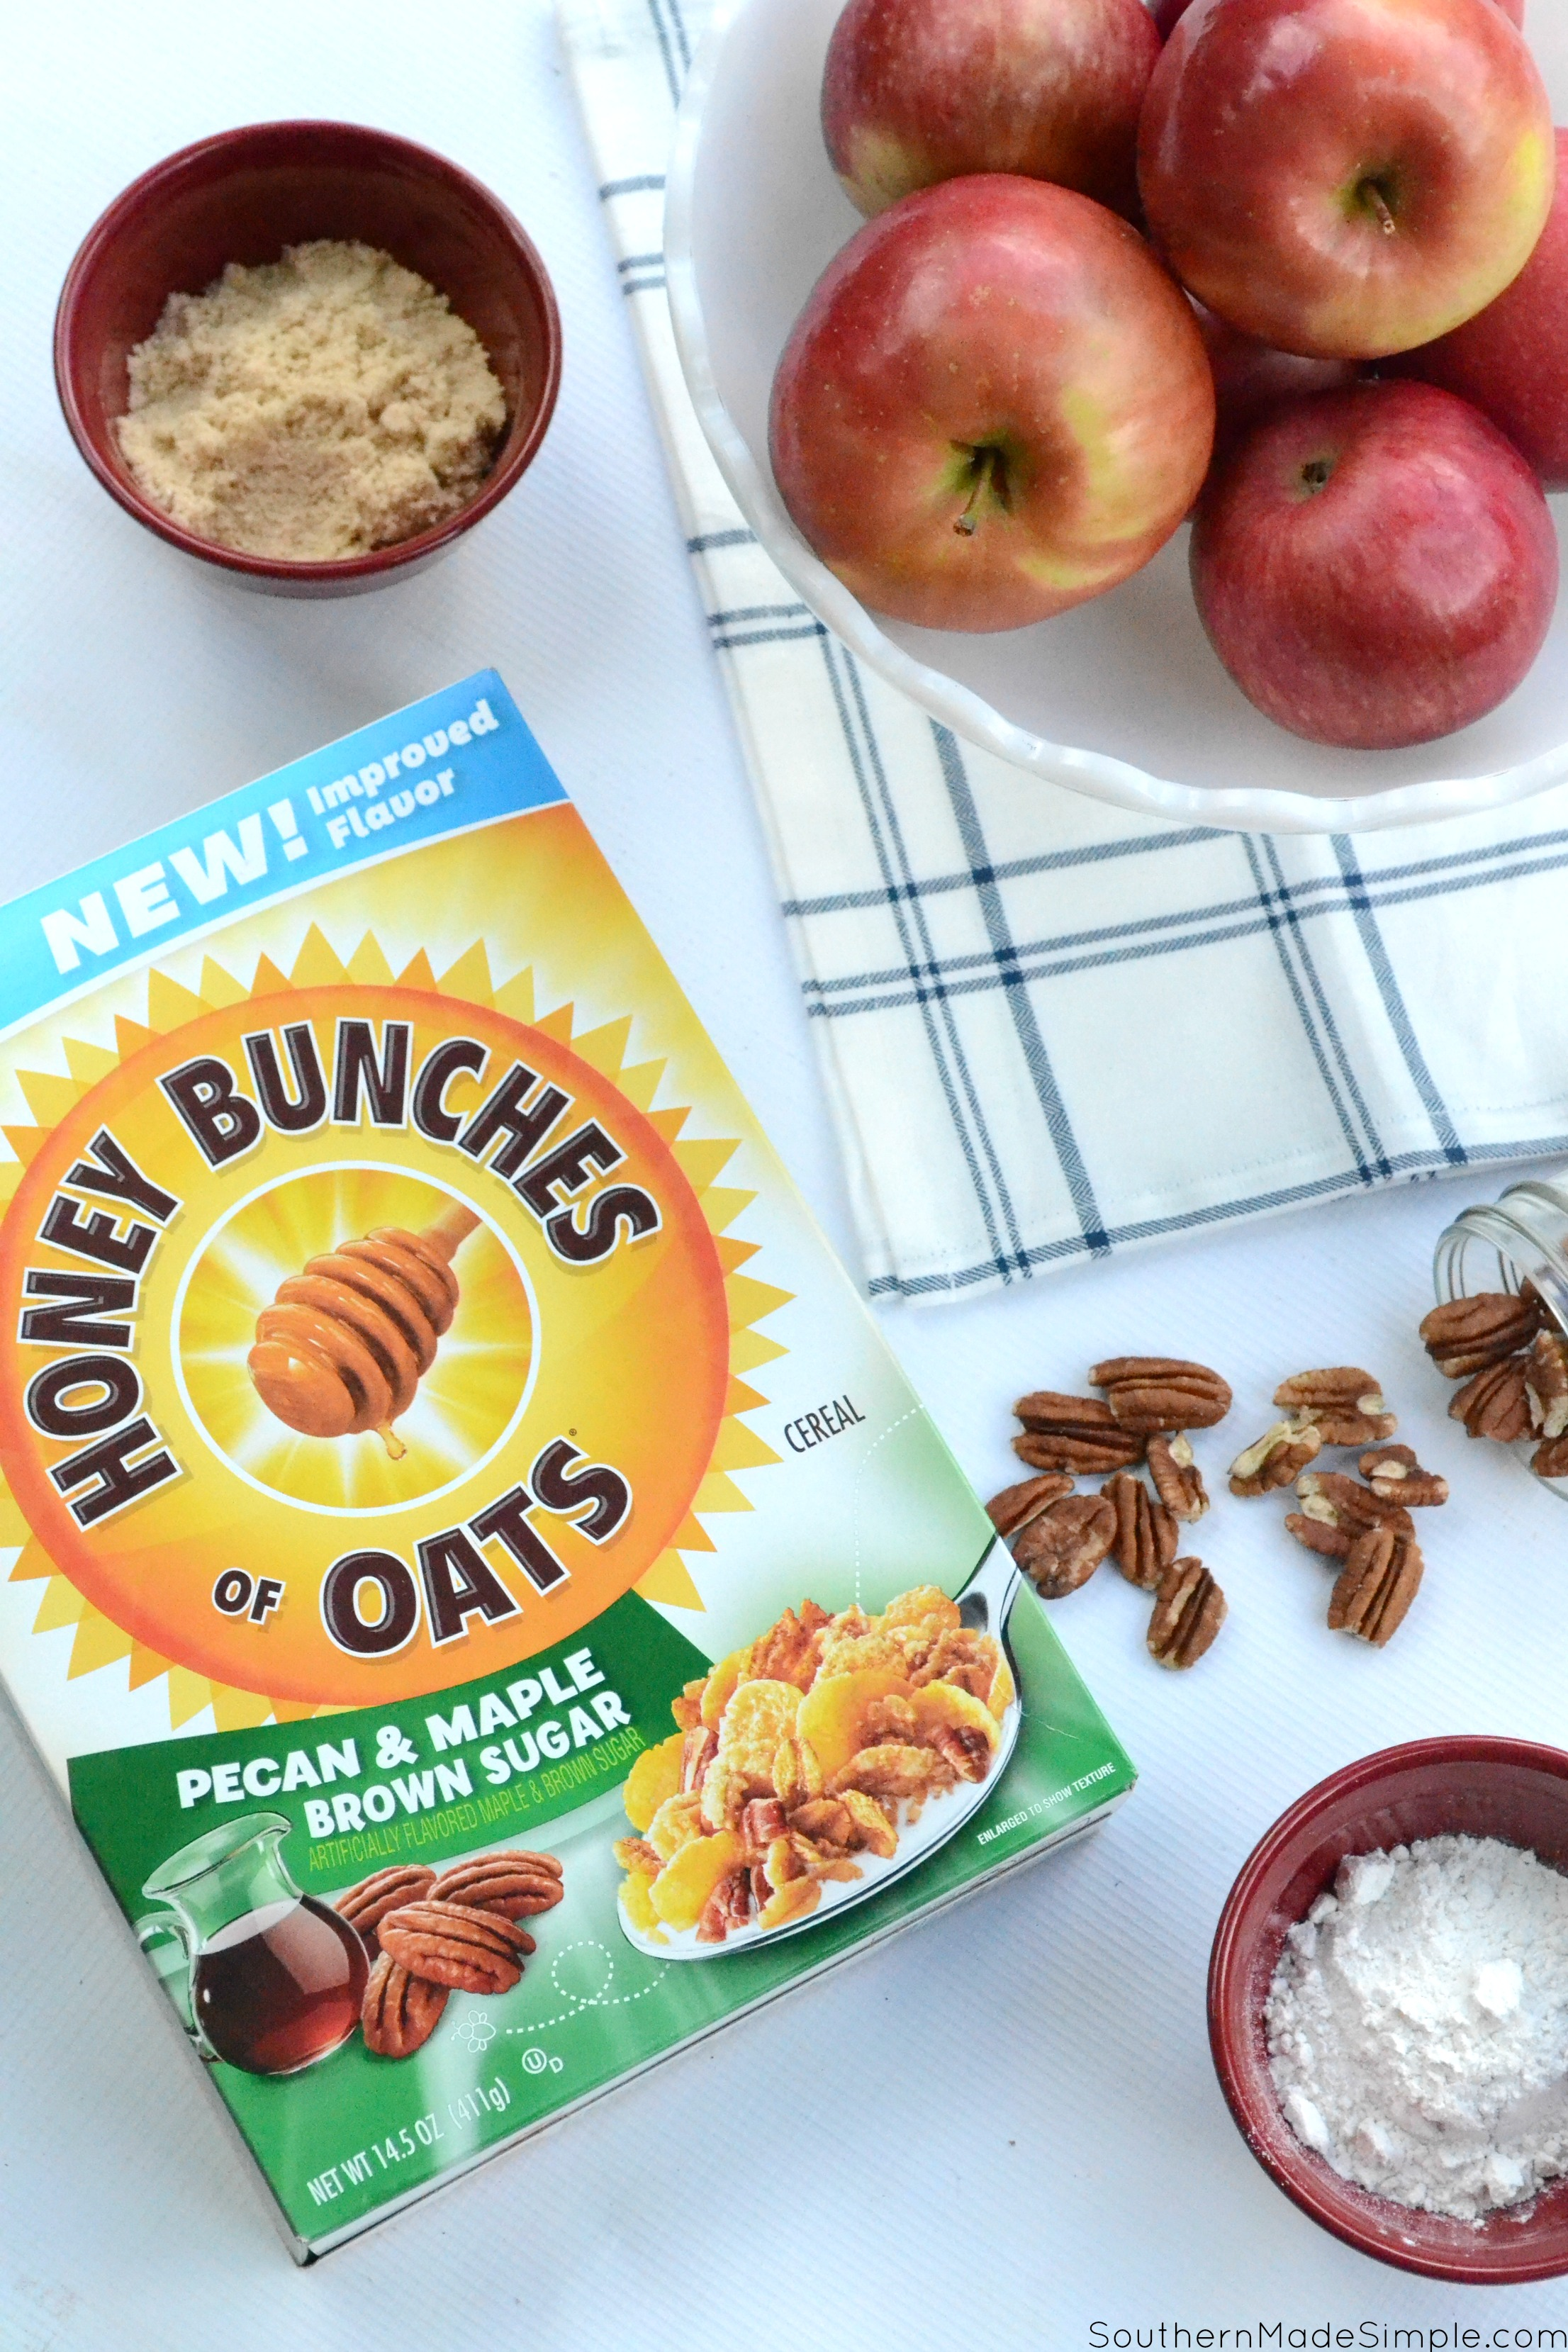 Fall is in full swing, and these Baked Honey Pecan Stuffed Apples are the perfect way to celebrate! Make with Honey Bunches of Oats to give them a crispy crunch topping, you'll want to go back for seconds! #ad